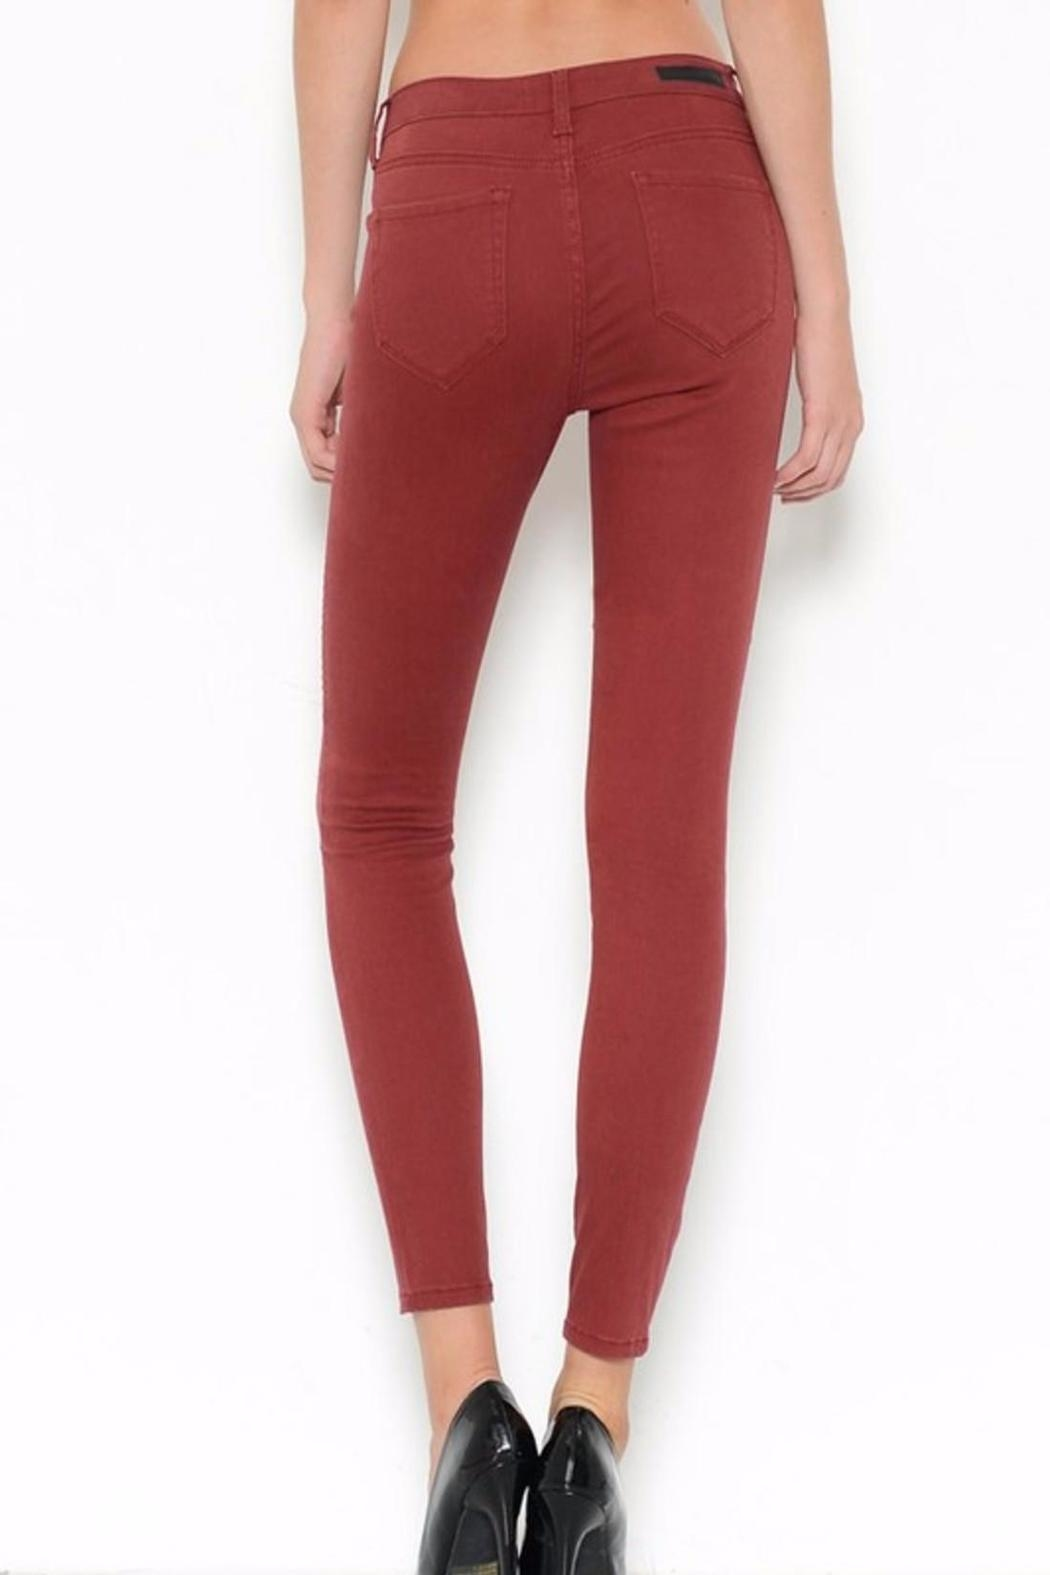 Cello Jeans Burgandy Skinny Jeans - Front Full Image